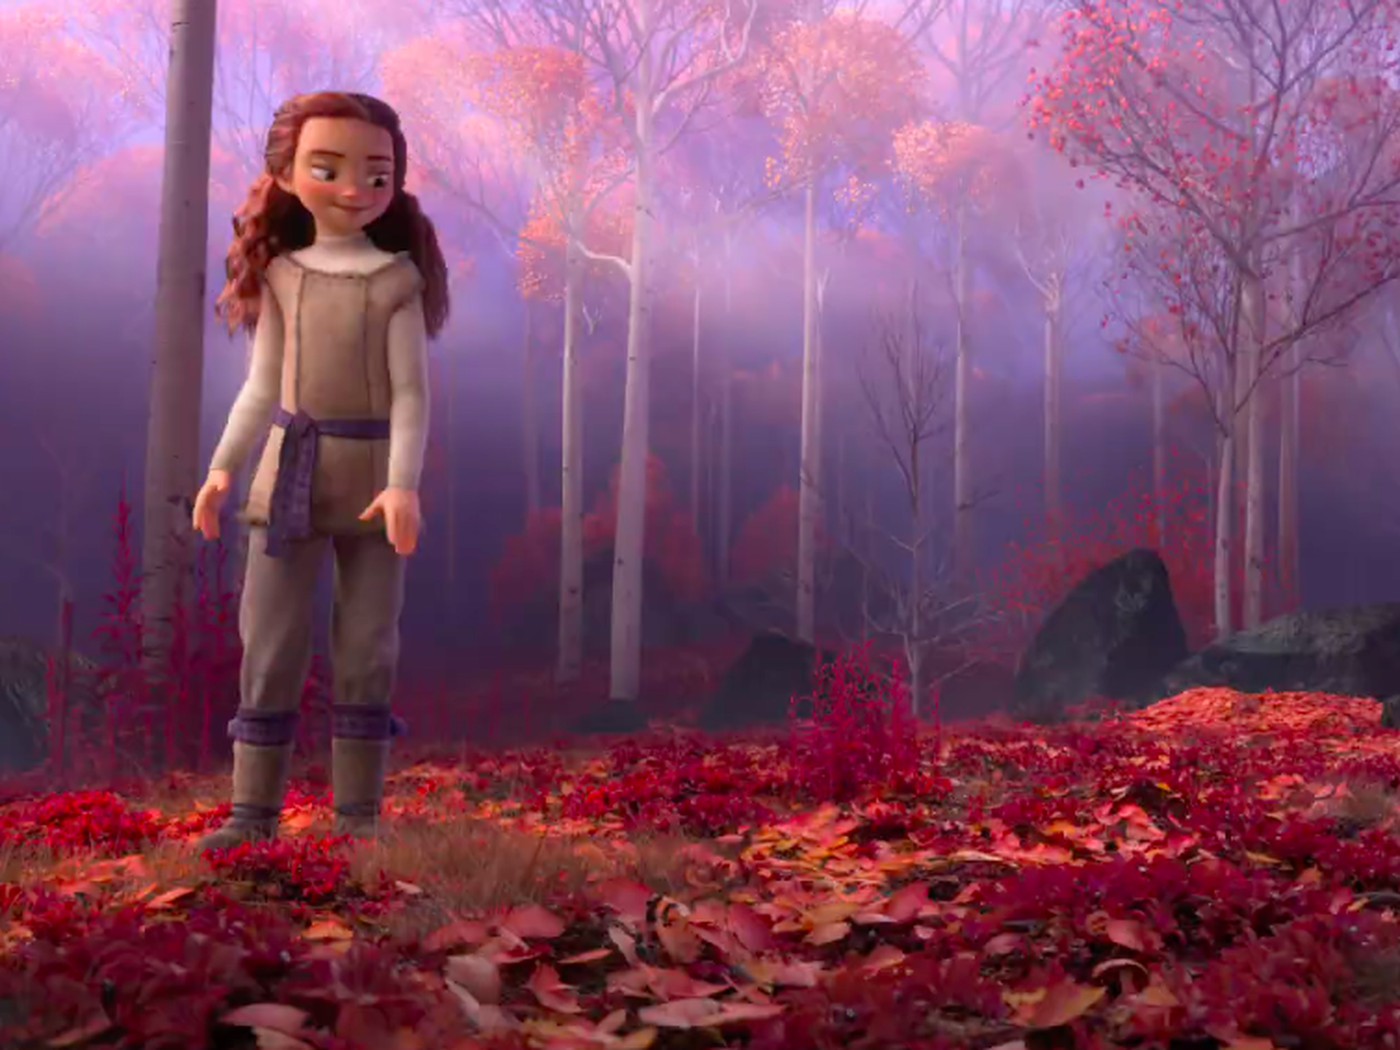 Frozen 2 theory connects sequel to Rise of the Brave Tangled